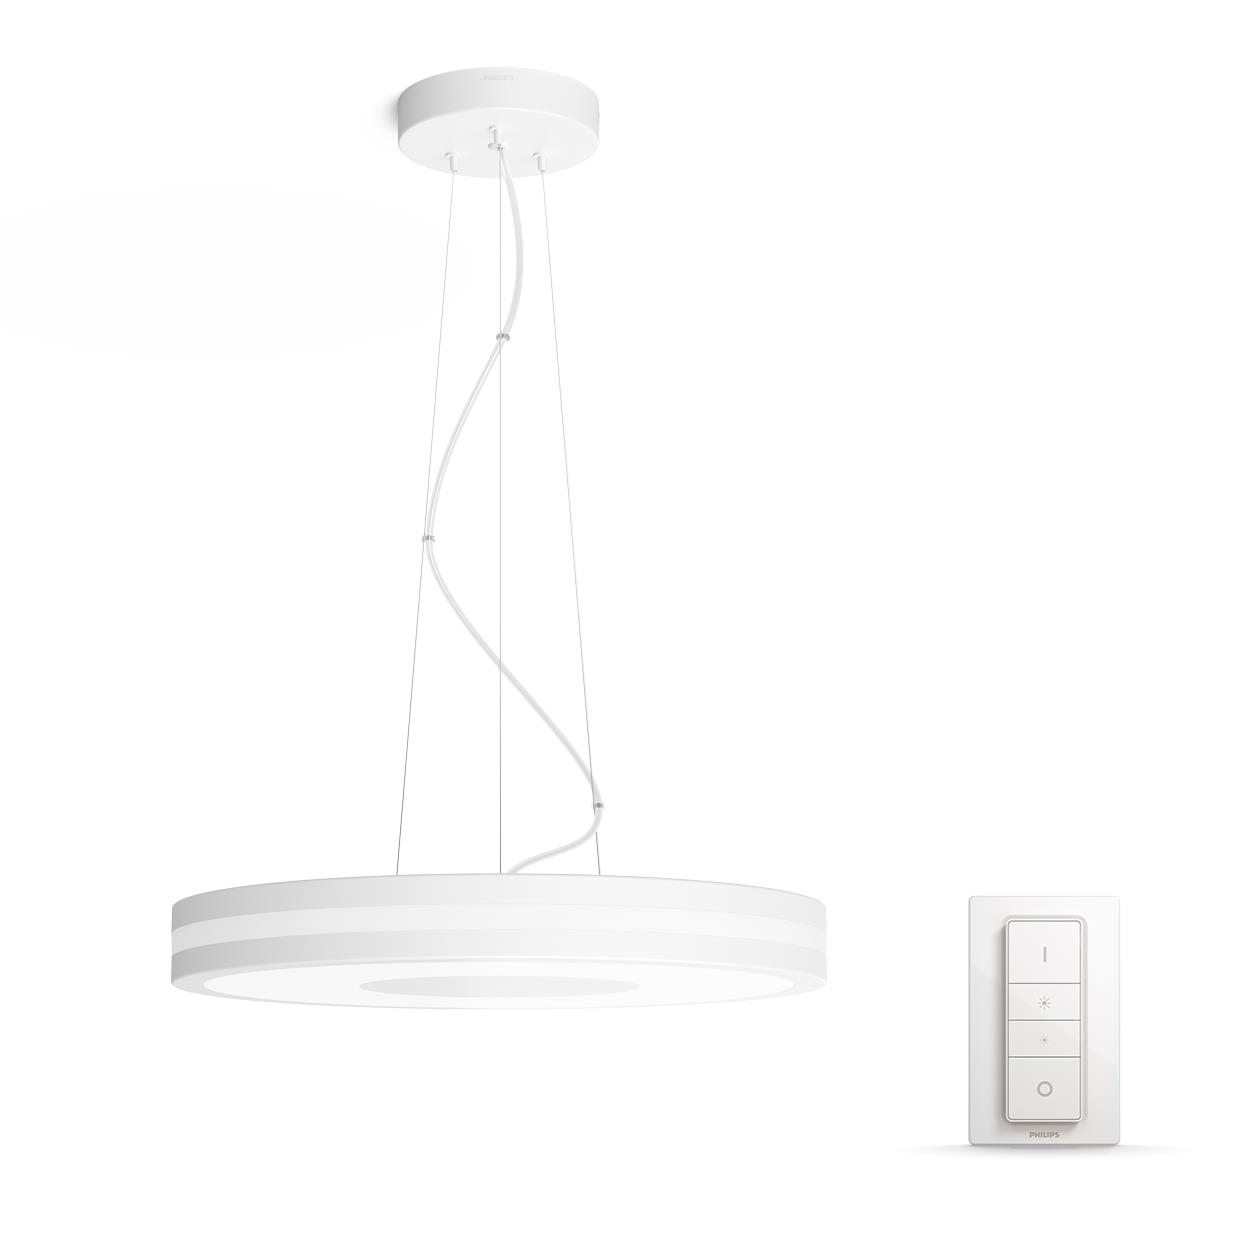 Philips Hue - Being Pendant Lamp  White (Dimmer Included) - White Ambiance - E